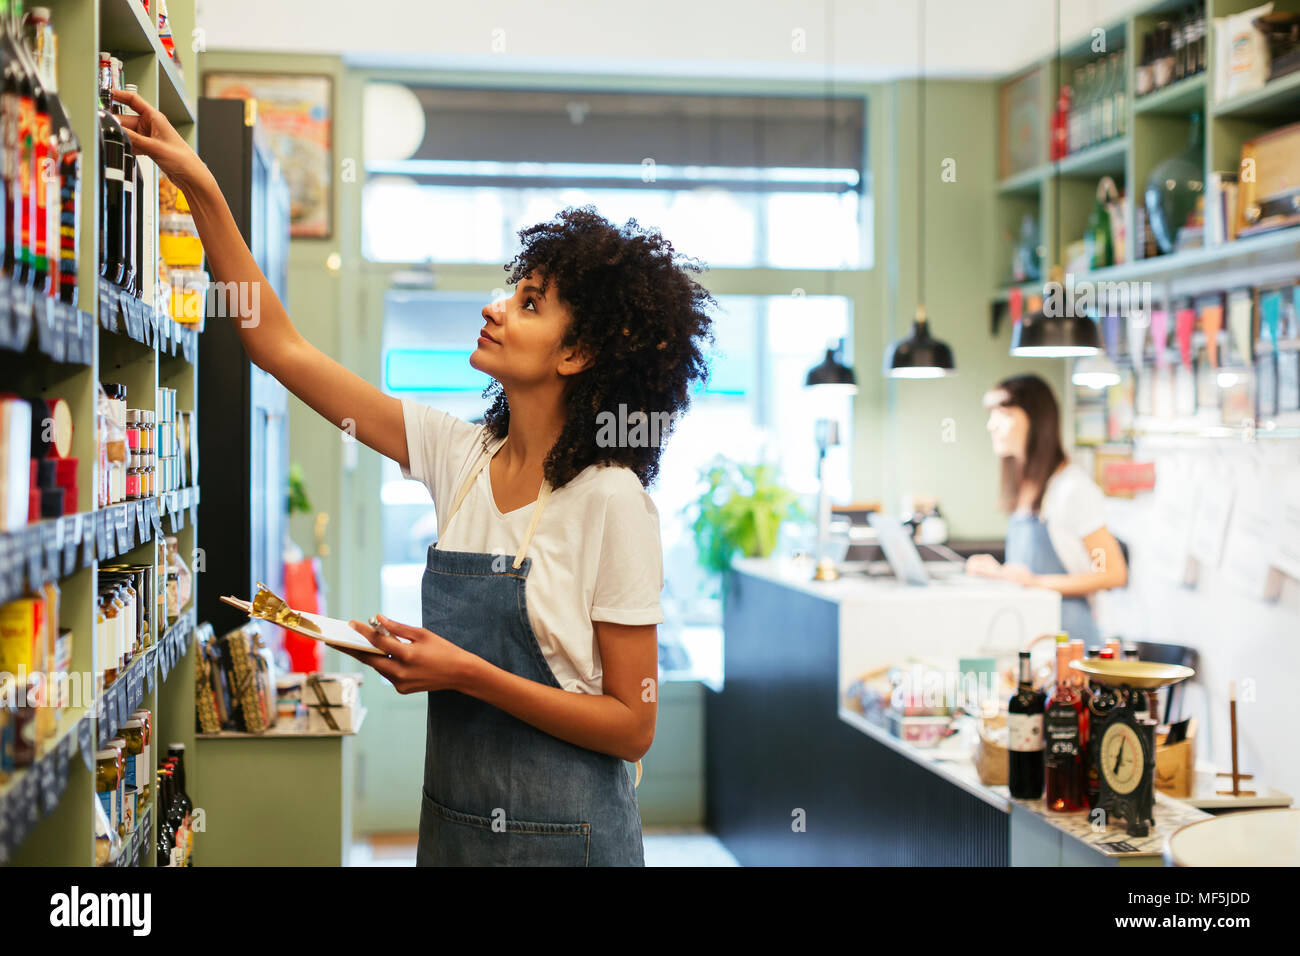 Woman with clipboard at shelf in a store - Stock Image